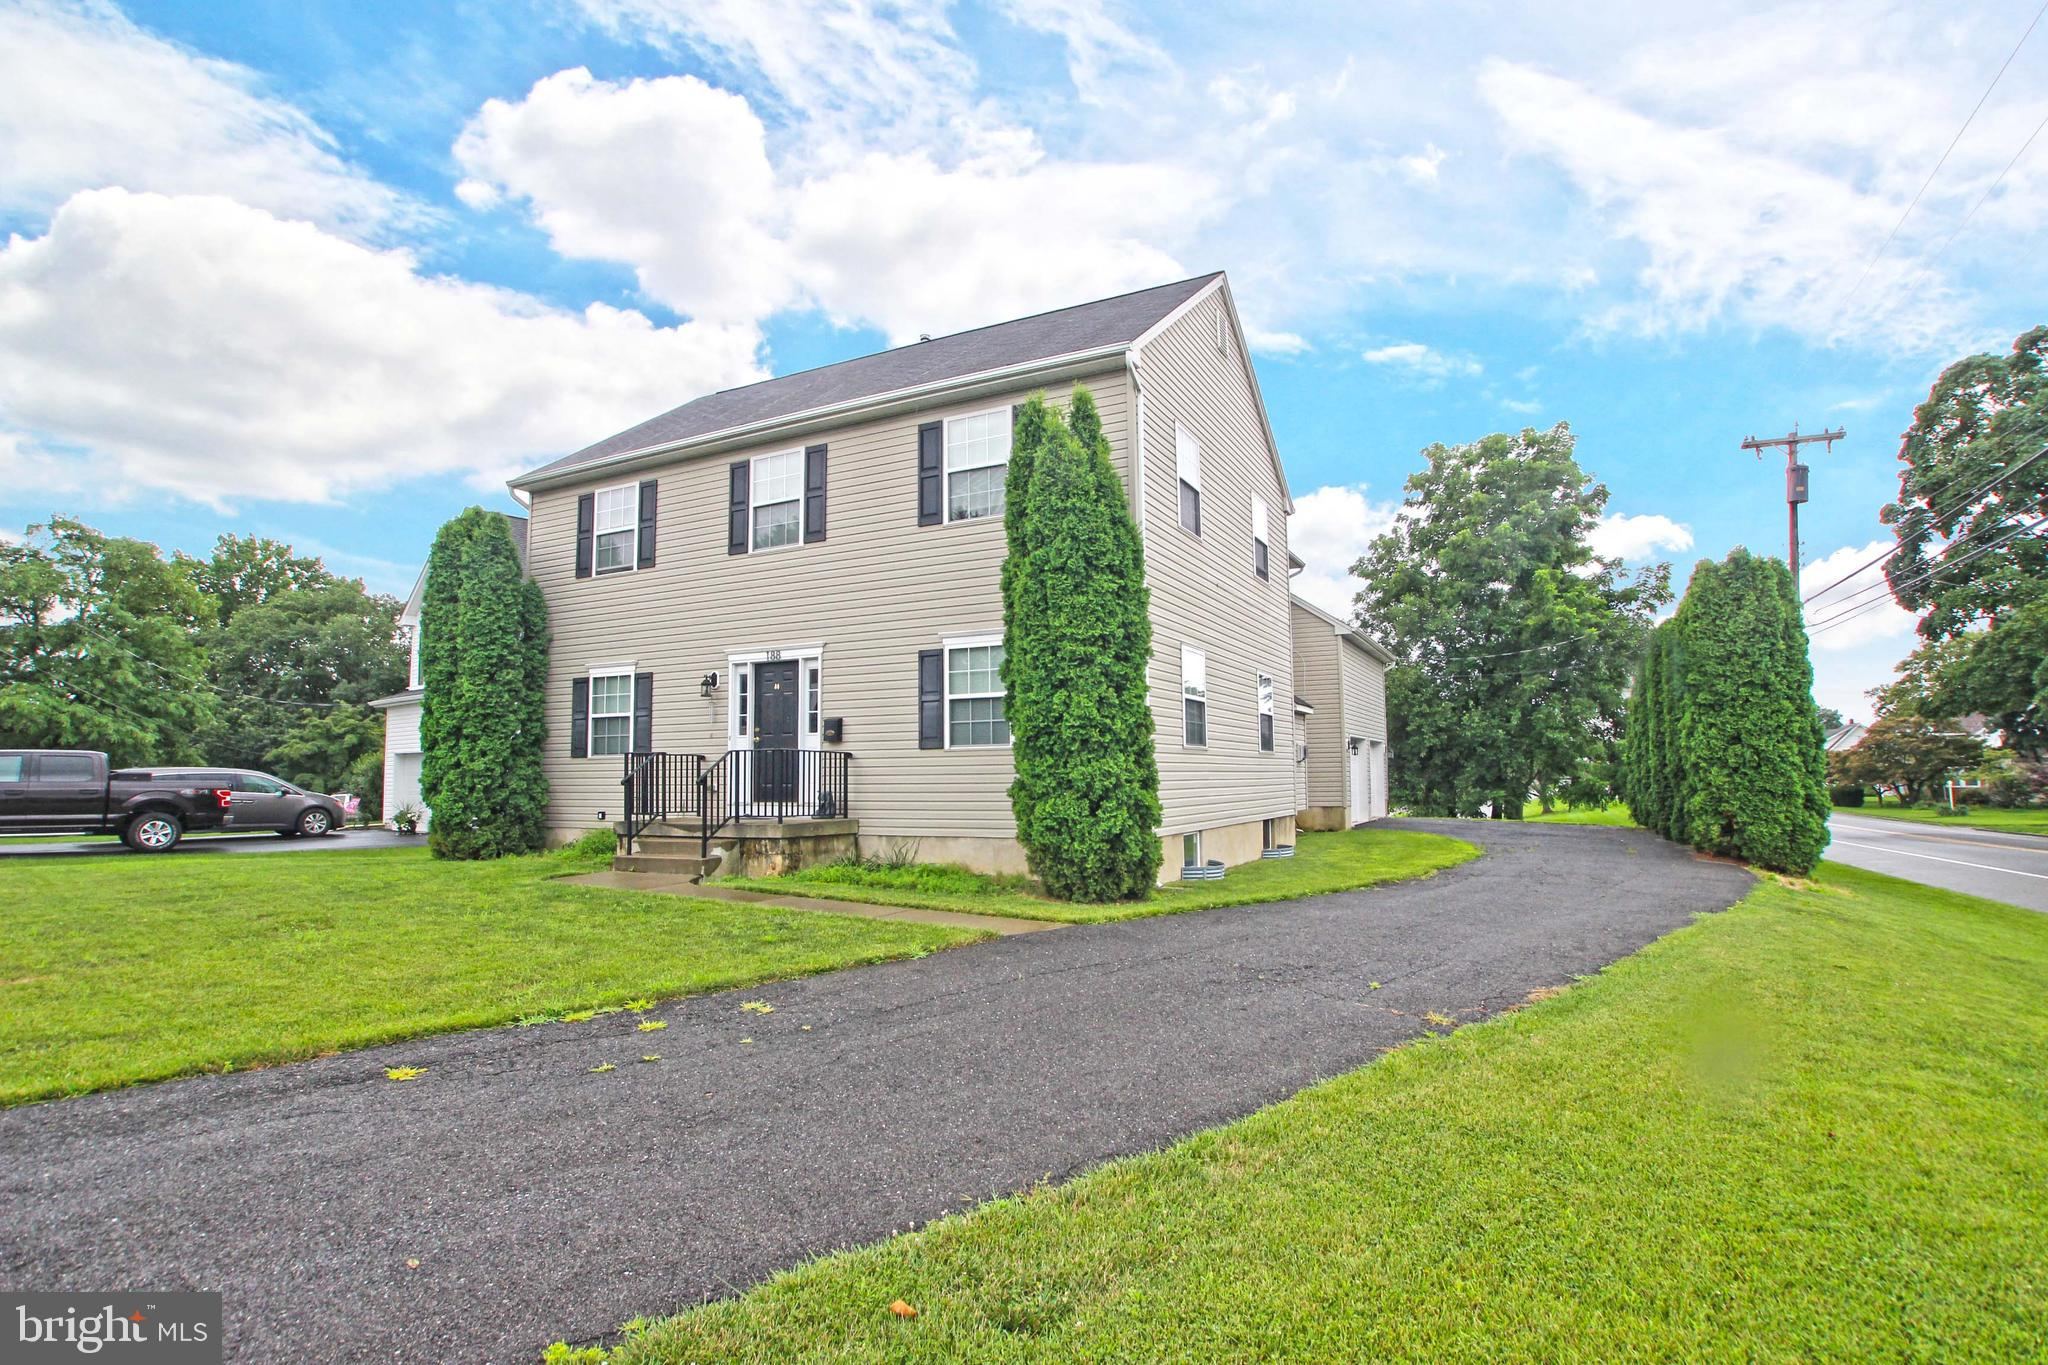 188 BOWERS AVENUE, PHILLIPSBURG, NJ 08865